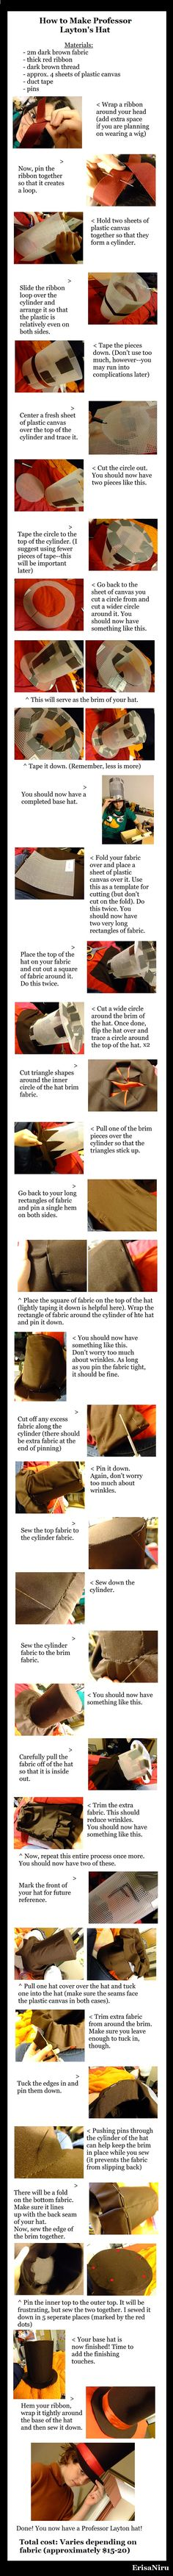 An amazingly detailed Professor Layton hat tutorial. This is awesome! I need to make this sometime...